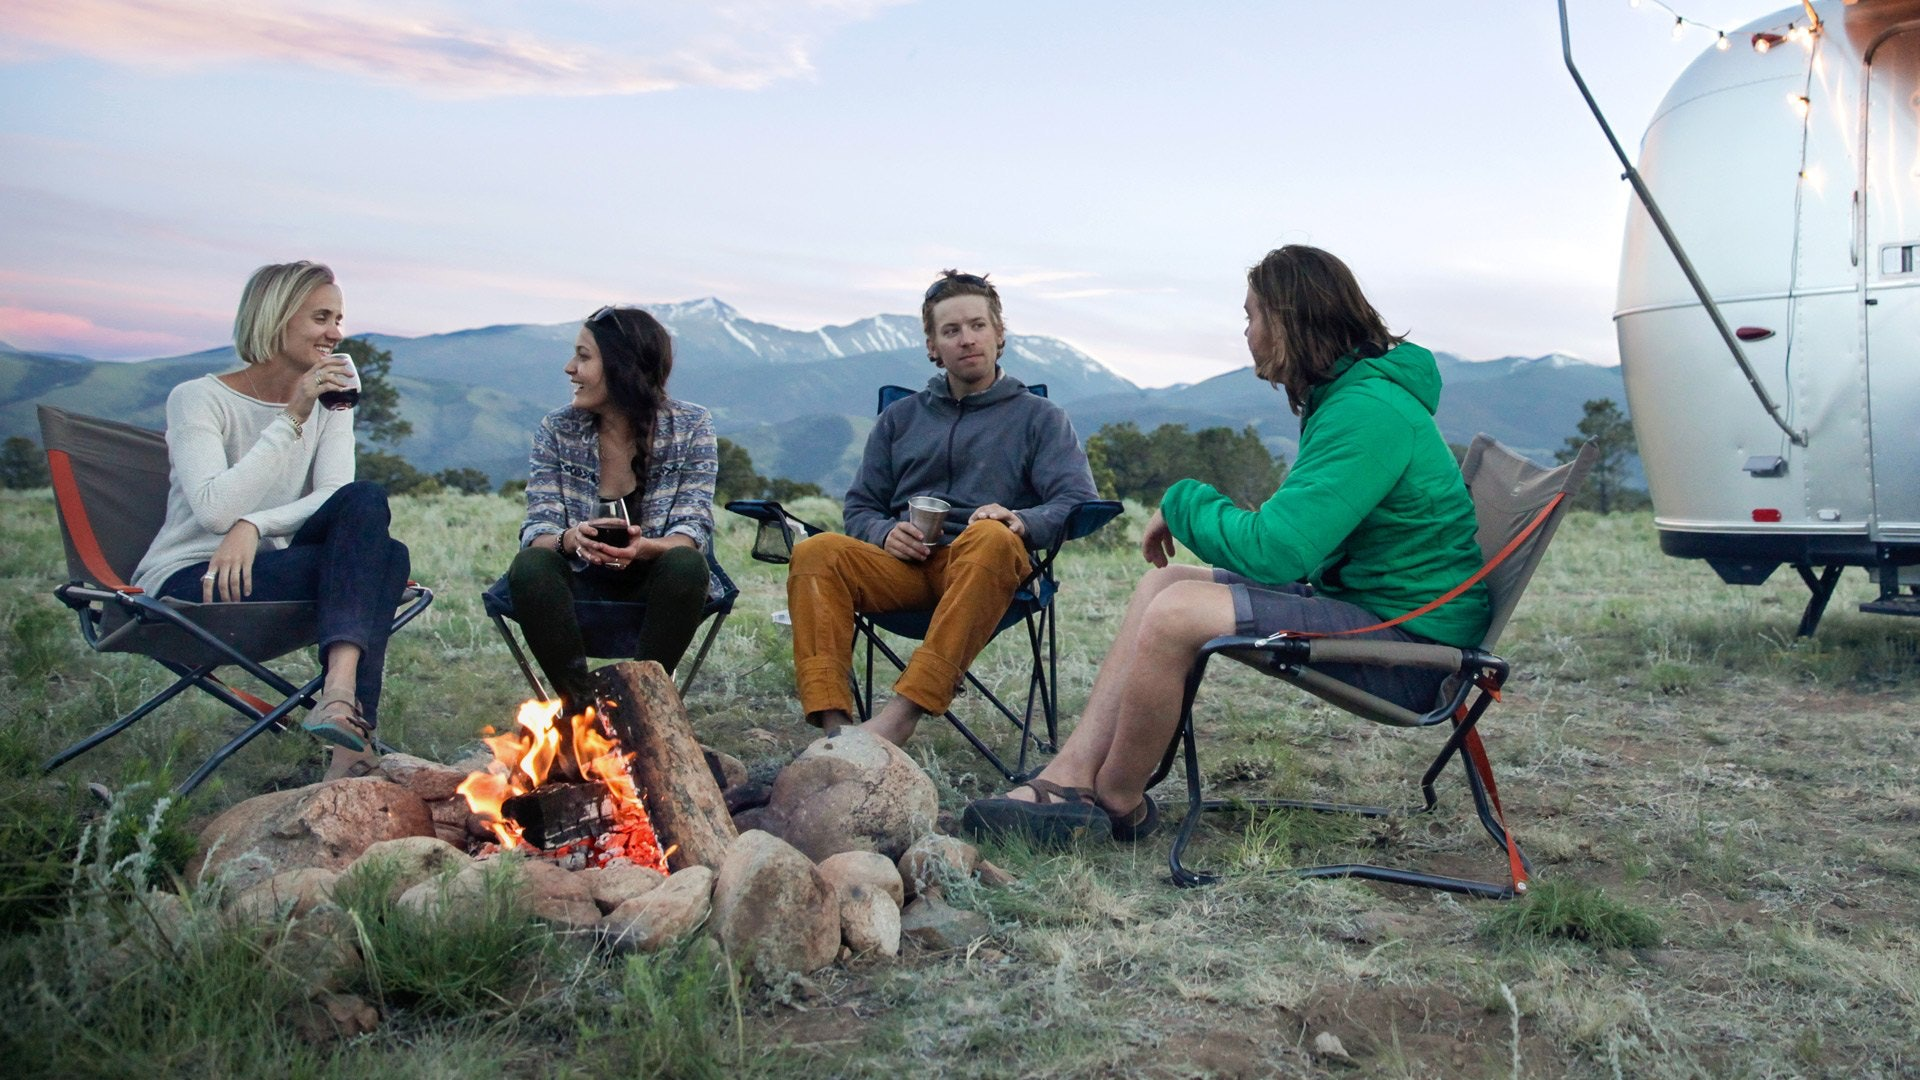 four millennials around a campfire with airstream in the background